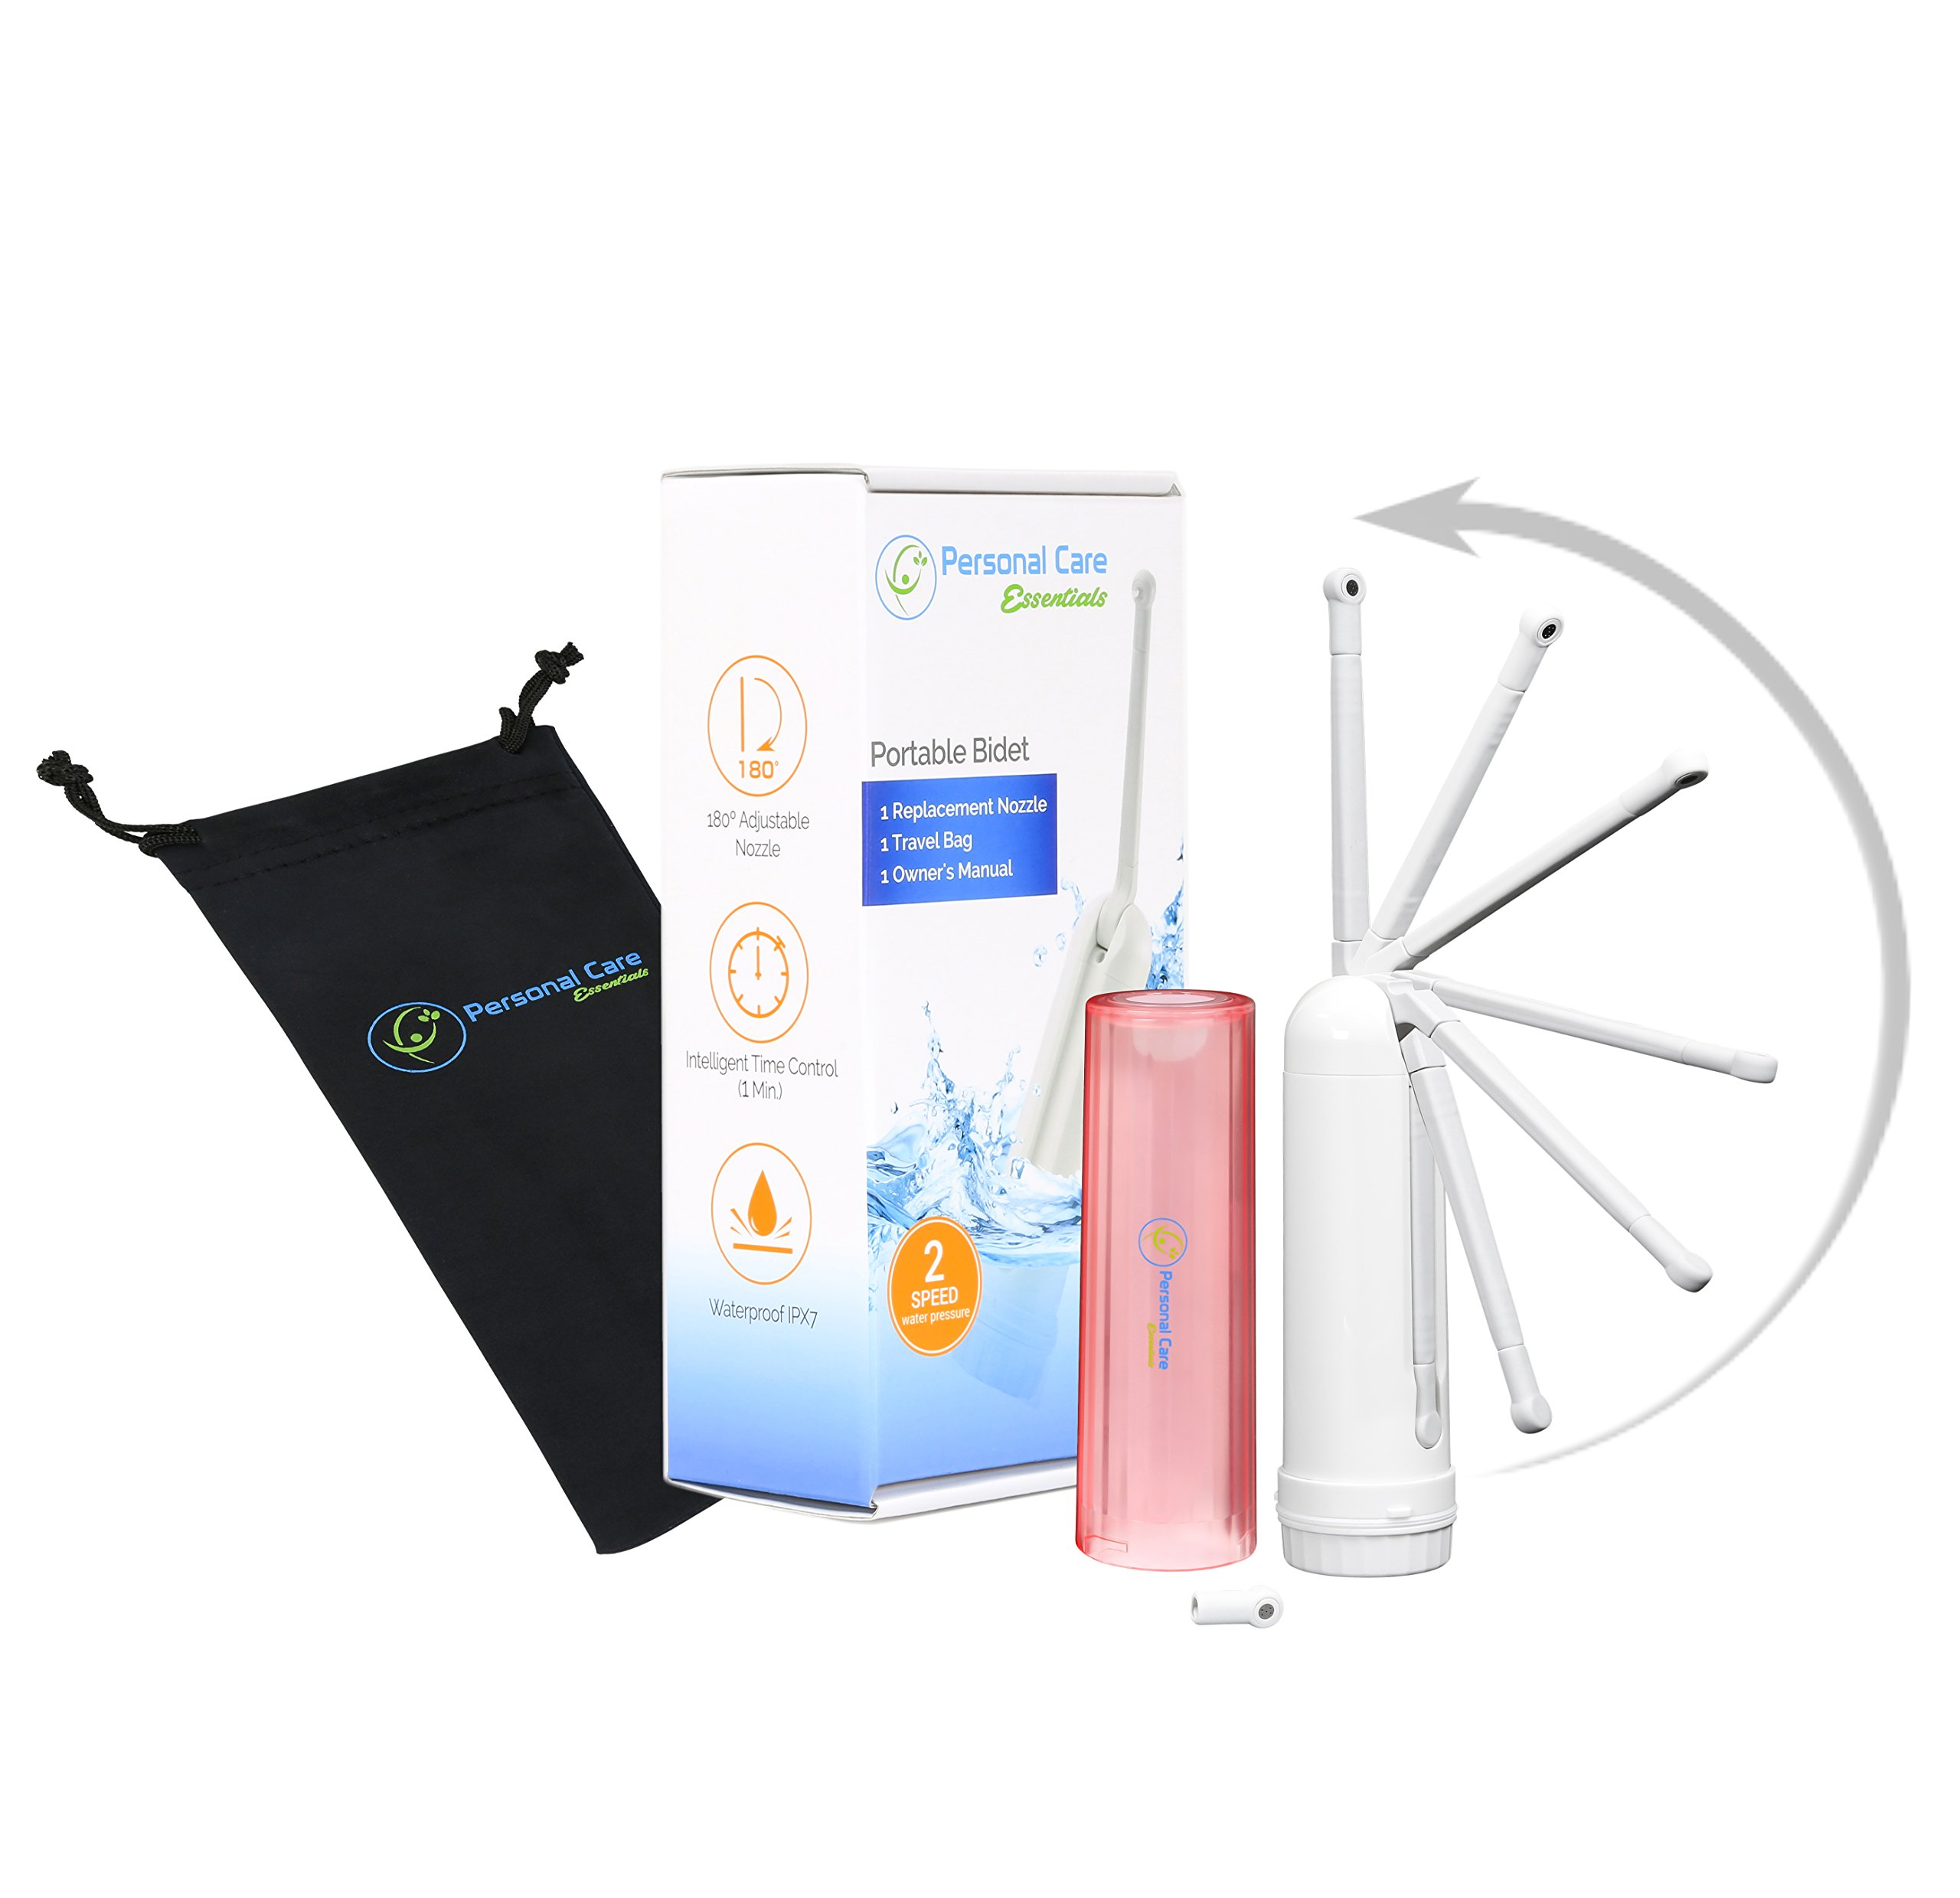 Personal Care Essentials Feminine Hygiene Kit - Includes Personal Bidet Sprayer with Adjustable Nozzle, Replacement Nozzle, and Travel Bag - 1 Year Warranty by Personal Care Essentials (Image #1)